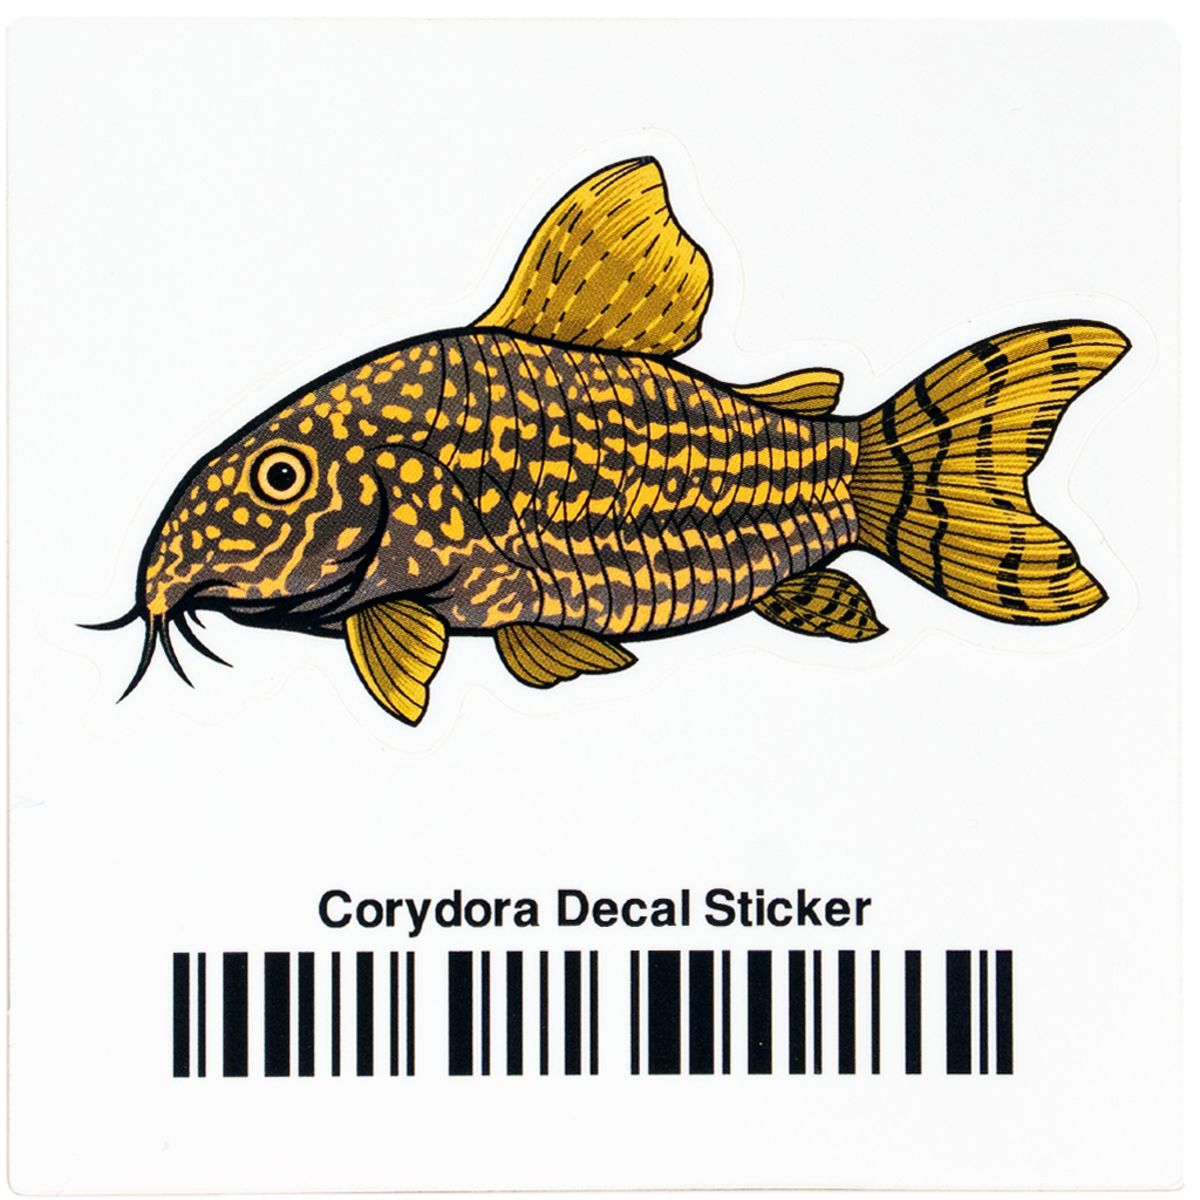 Corydoras Decal Sticker